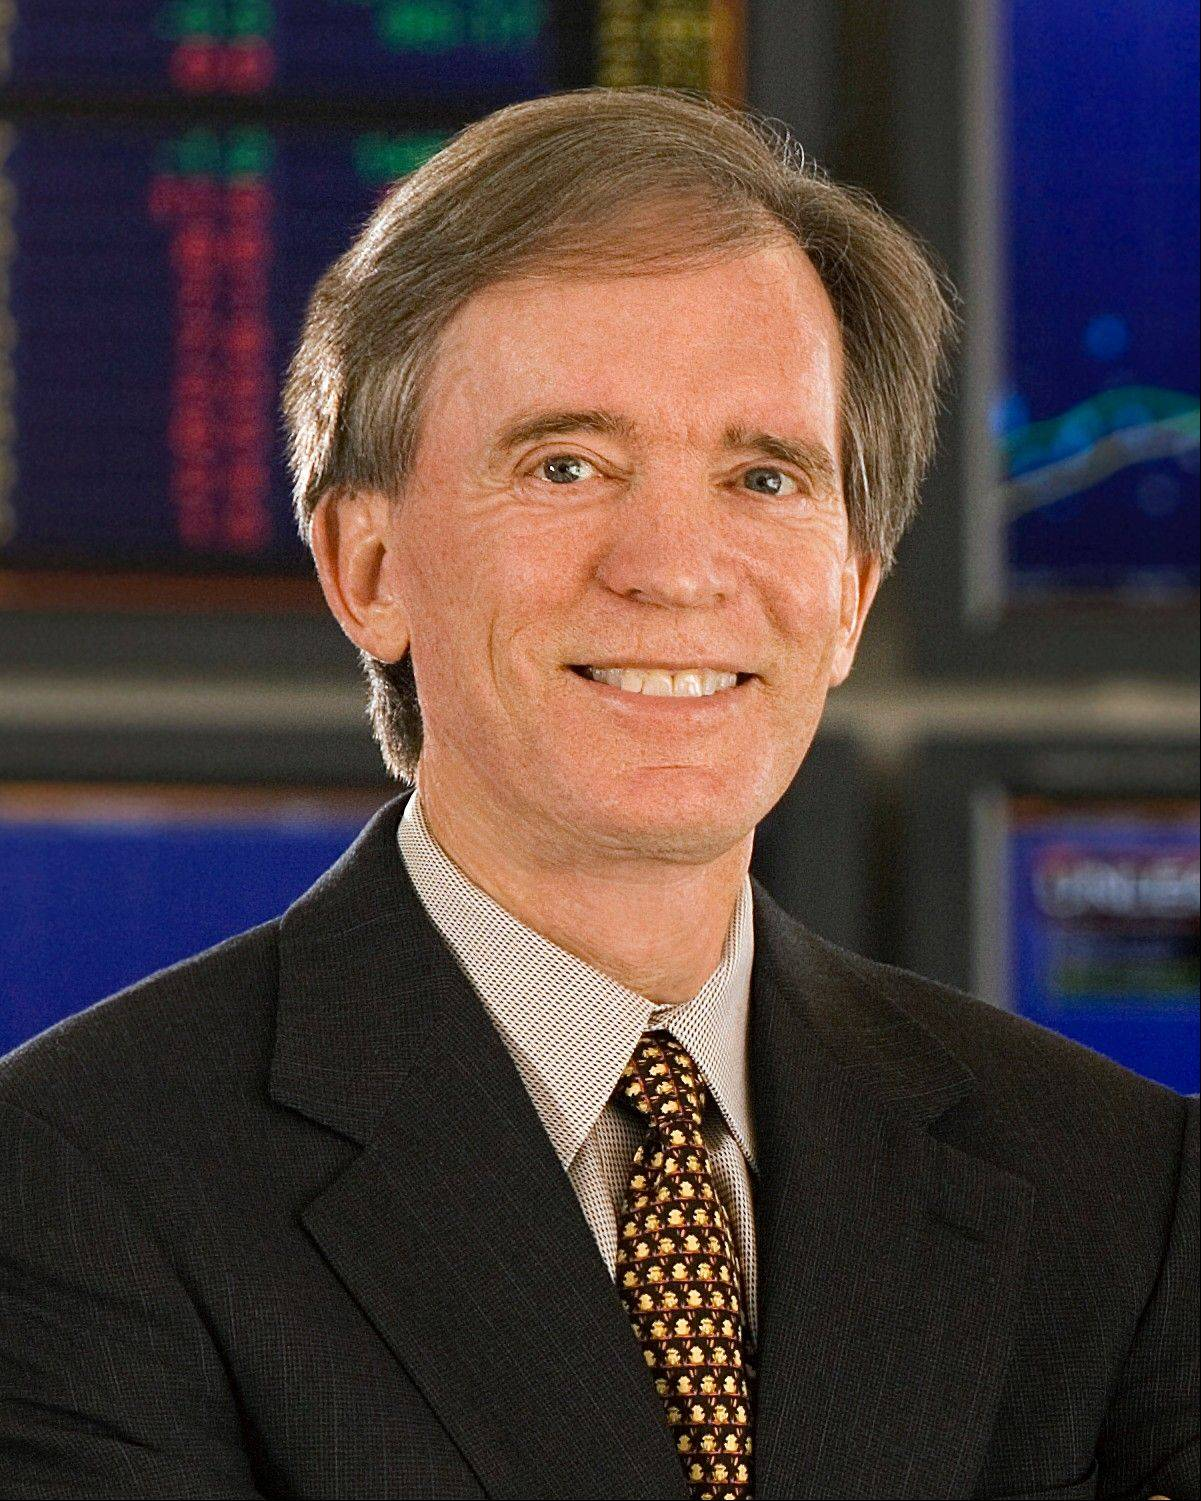 Bill Gross is a three-time winner of Morningstar's bond fund manager of the year title, in addition to honors covering the last decade. The strong record he's compiled at PIMCO Total Return (PTTAX) is a key reason why it's attracted enough investors to become the world's largest mutual fund, with nearly $259 billion in assets. Yet last year, Gross went through a rough patch, posting a 3.7 percent return that trailed the vast majority of intermediate-term bond funds.